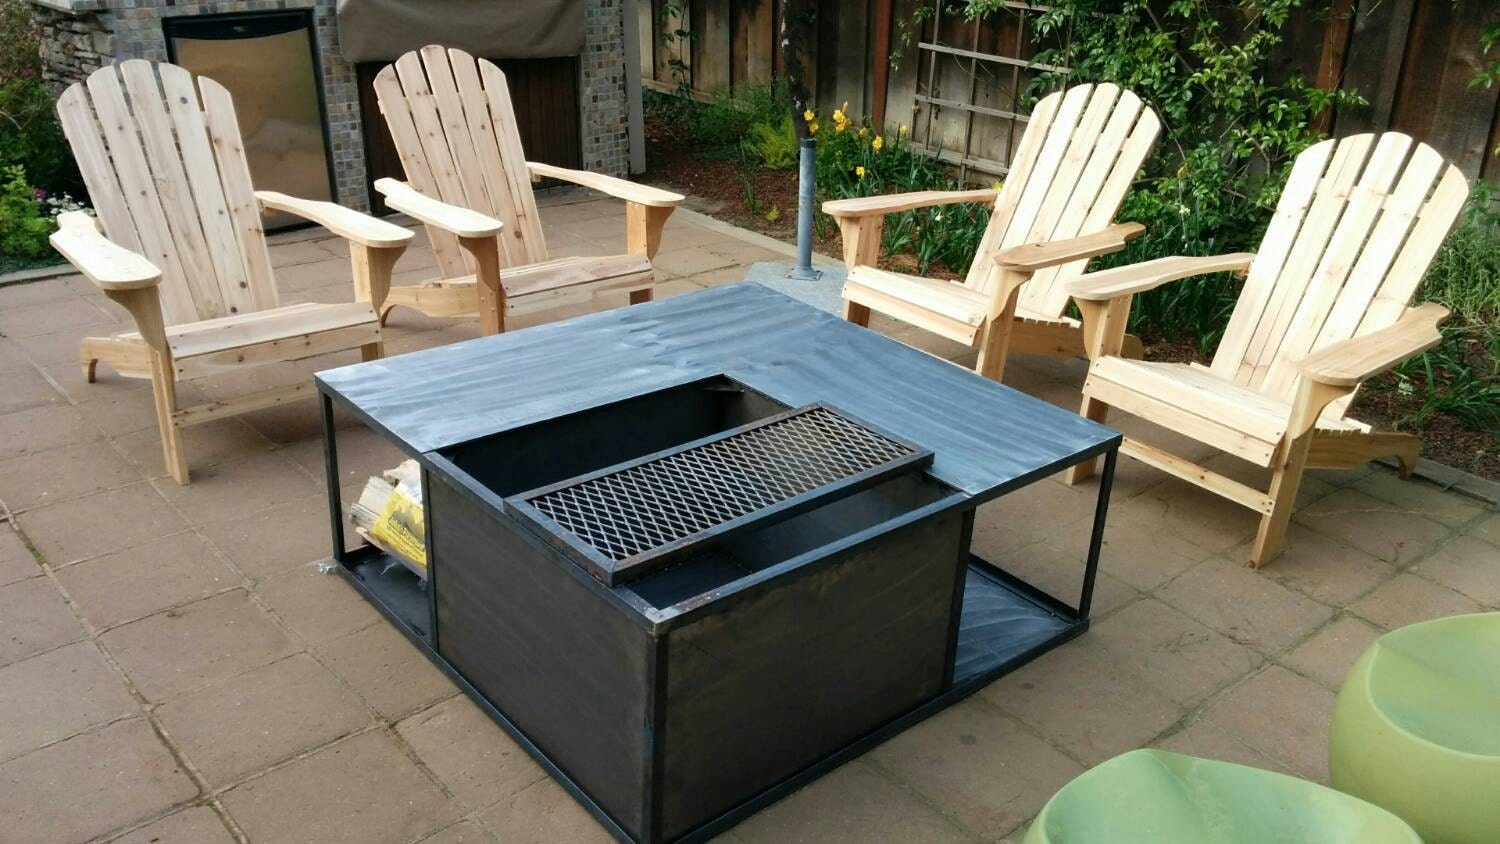 Fire Pit with Wood Storage 36x36 by FenomFab on Etsy